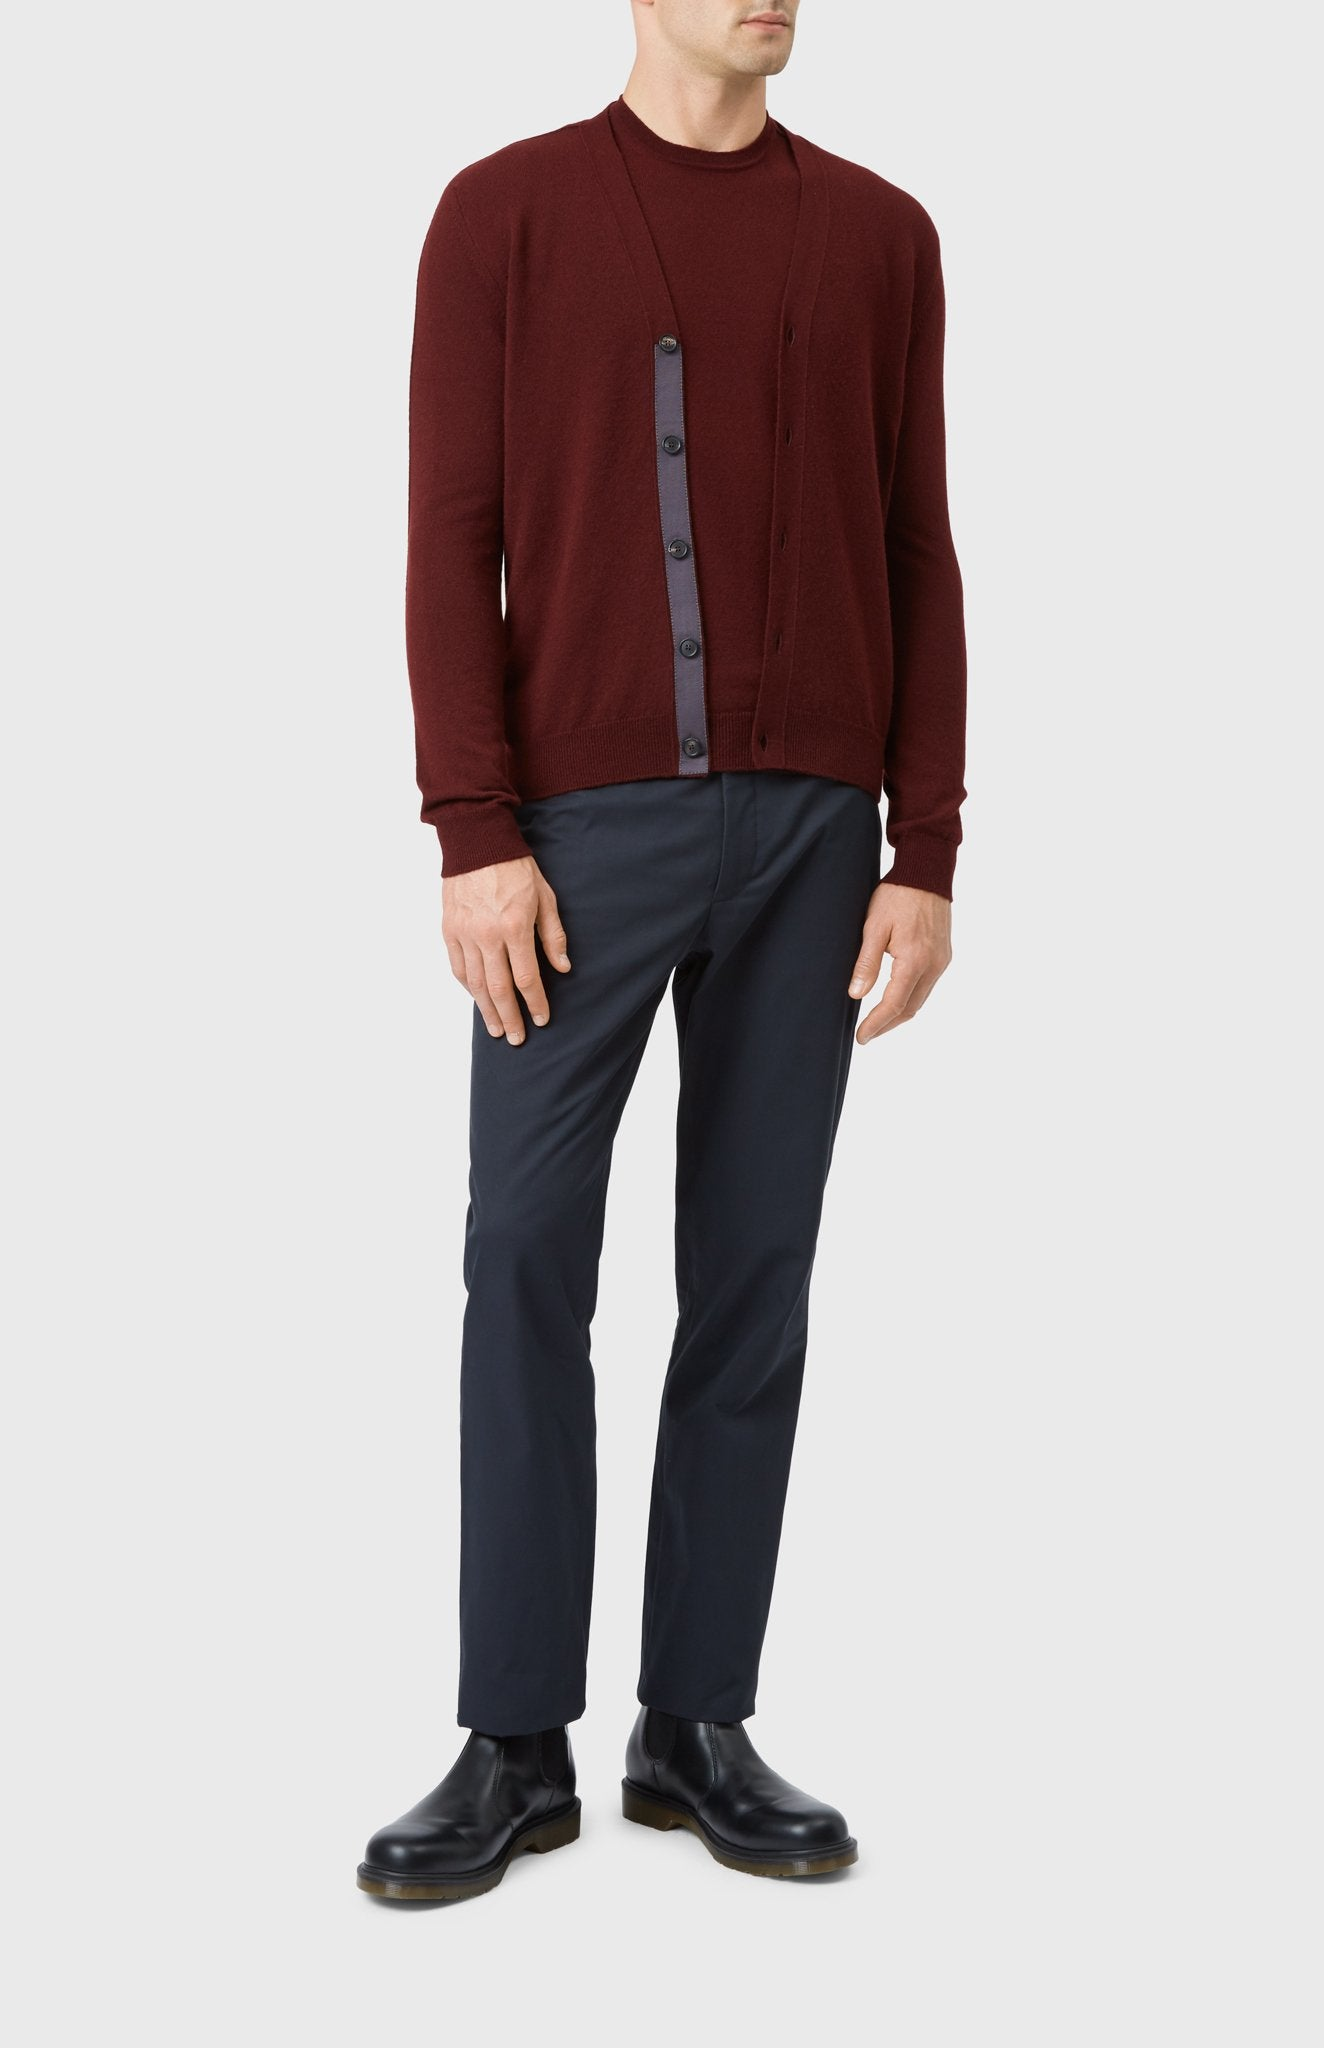 Men's Classic Cashmere Cardigan In Sloe